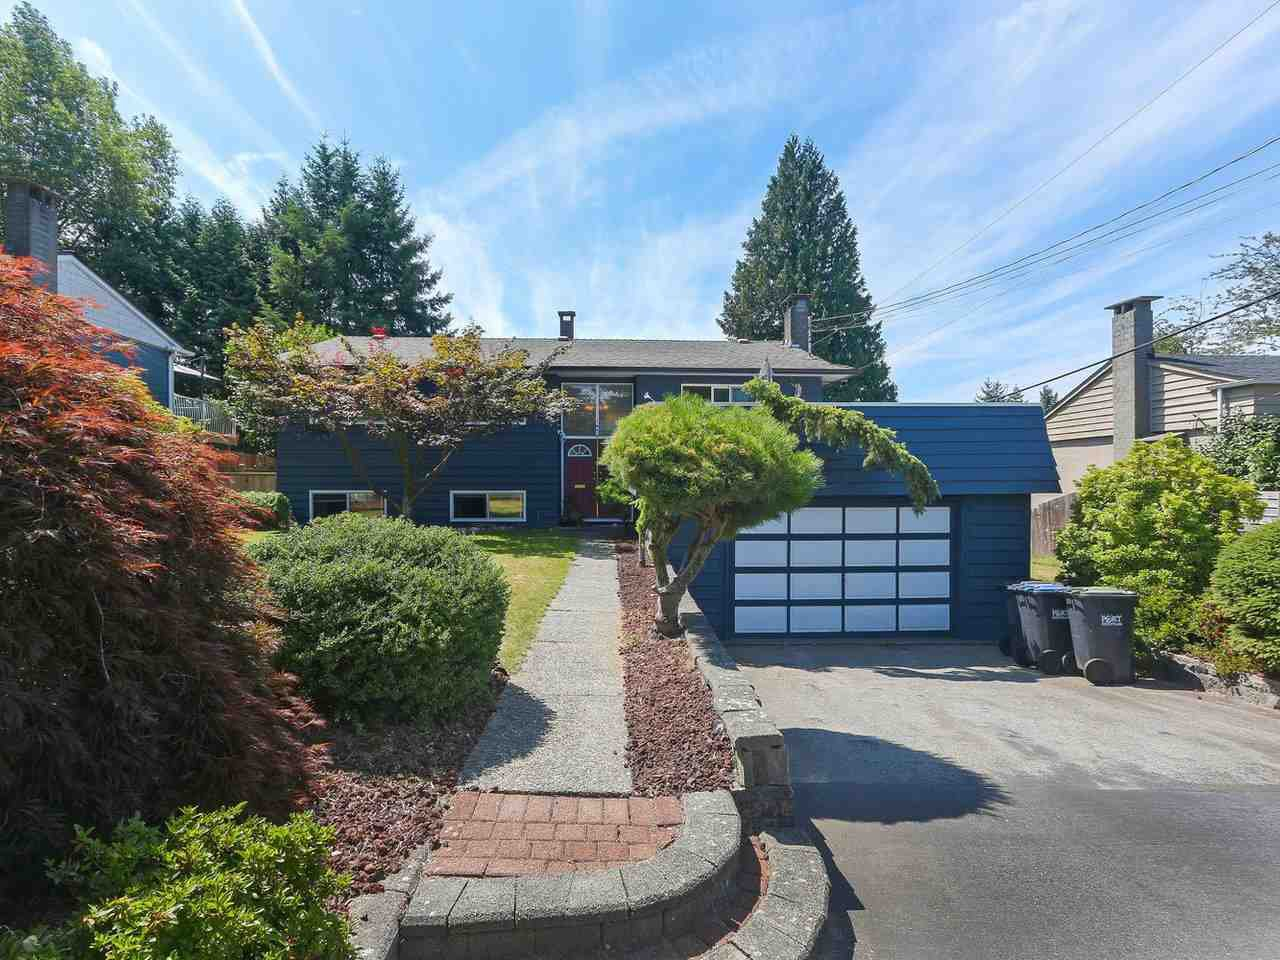 Main Photo: 1479 CELESTE Crescent in Port Coquitlam: Mary Hill House for sale : MLS®# R2390707